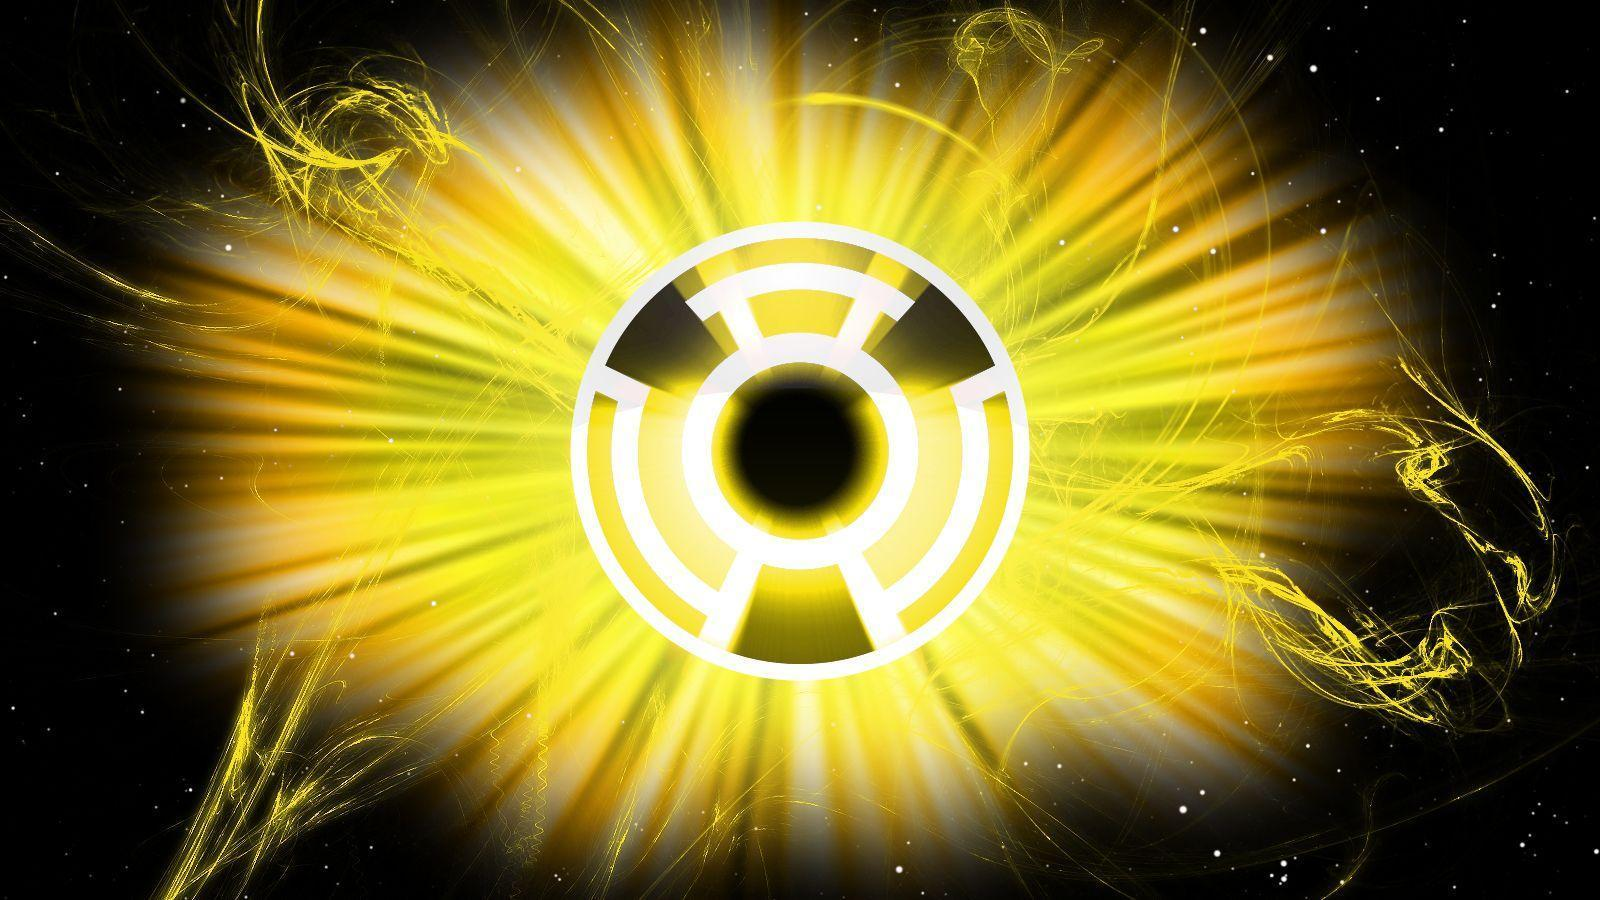 Lantern Corps Wallpapers Dump